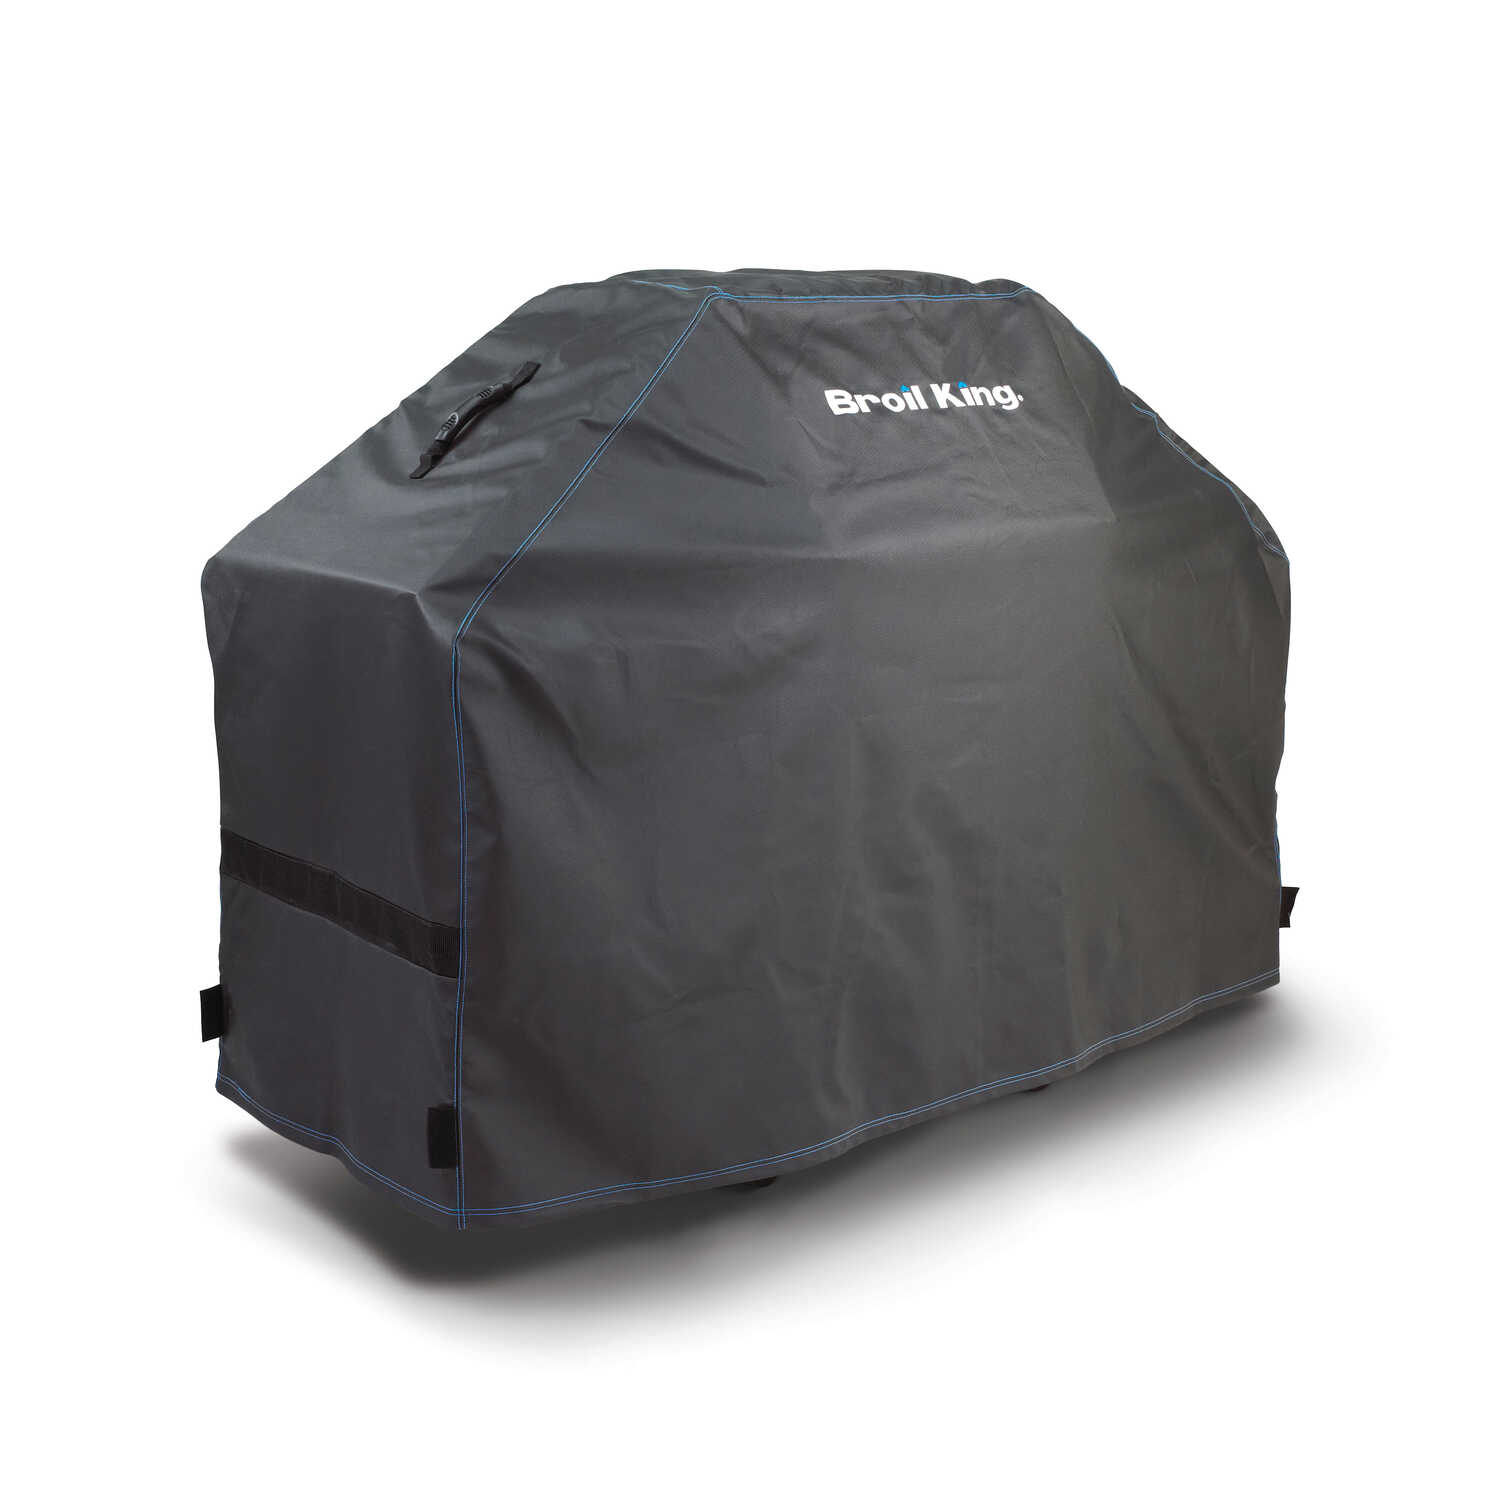 Broil King  Black  Grill Cover  For Baron 500 series 64 in. W x 45.5 in. H